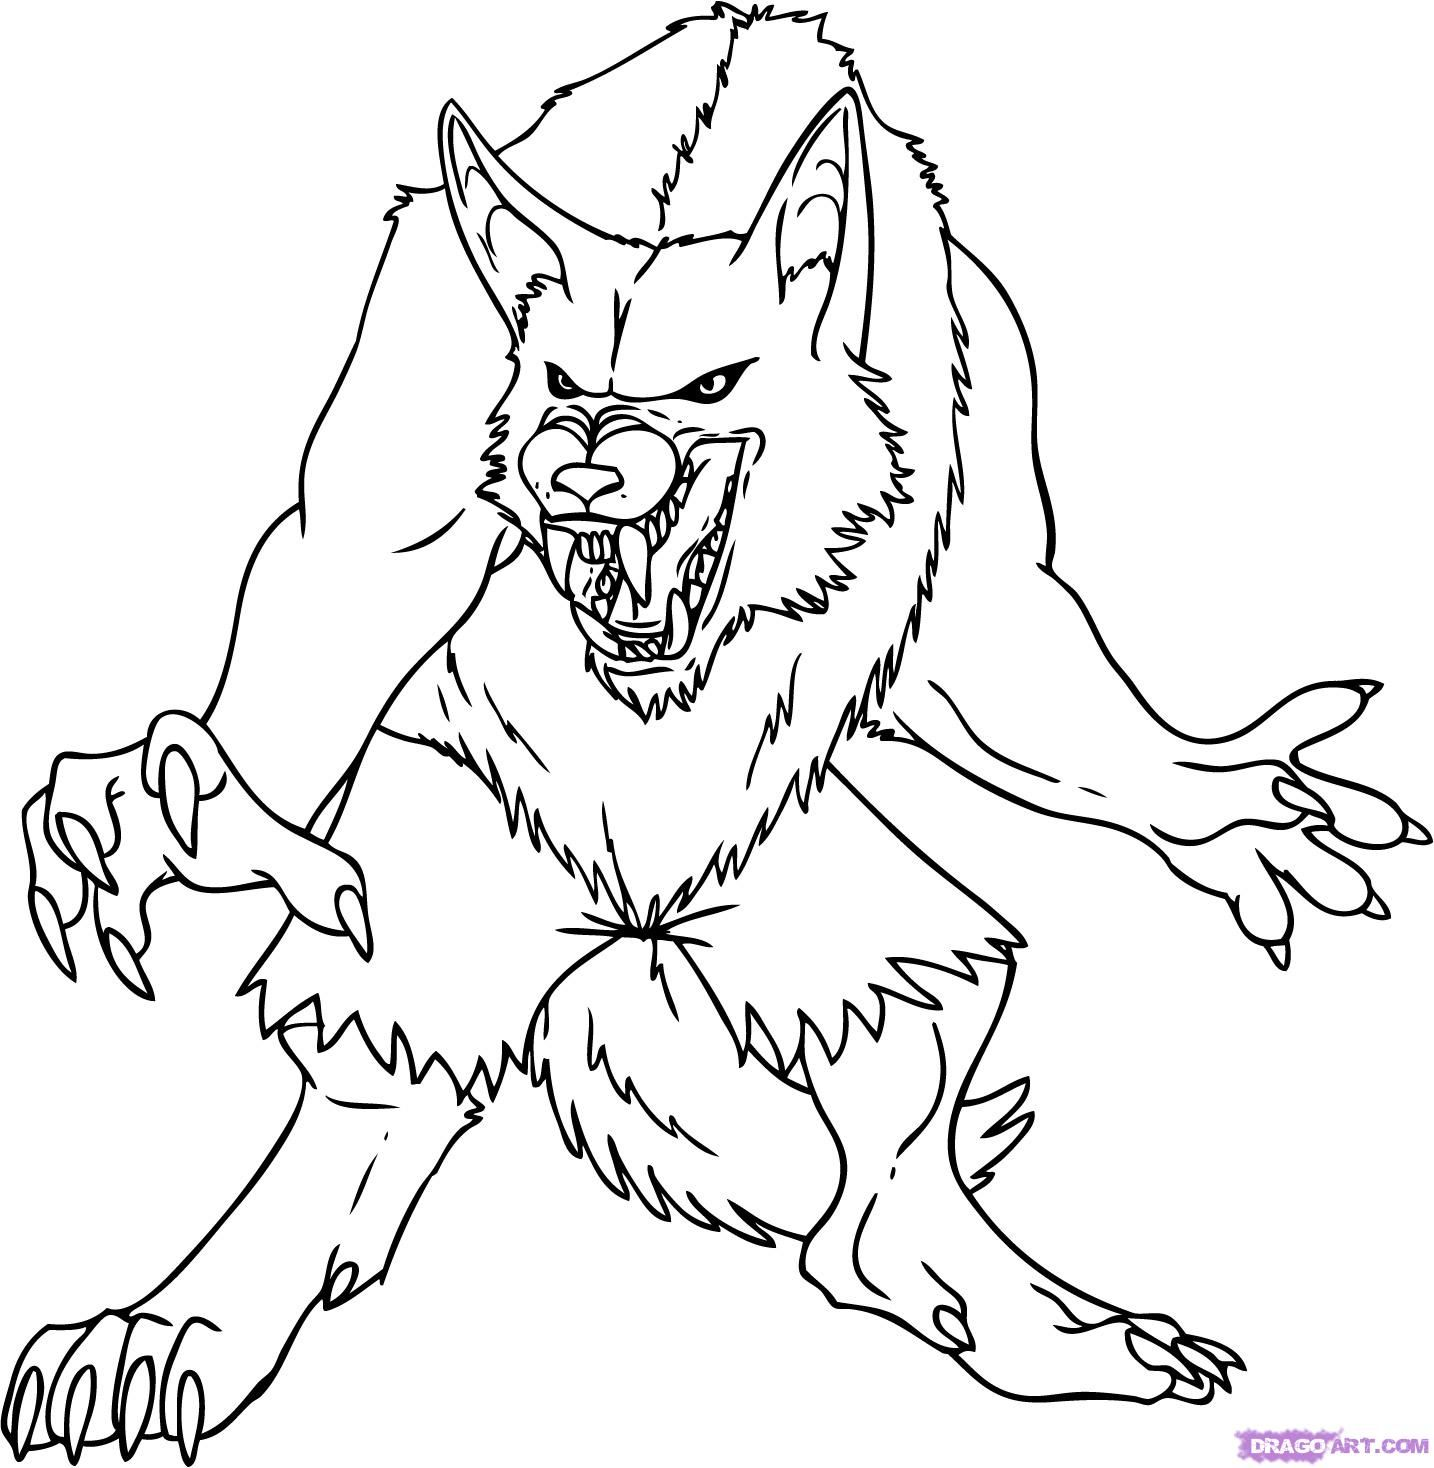 How To Draw A Cartoon Werewolf Step By Step Werewolves Monsters Free Online Drawing Tutorial Added B Monster Coloring Pages Werewolf Animal Coloring Pages